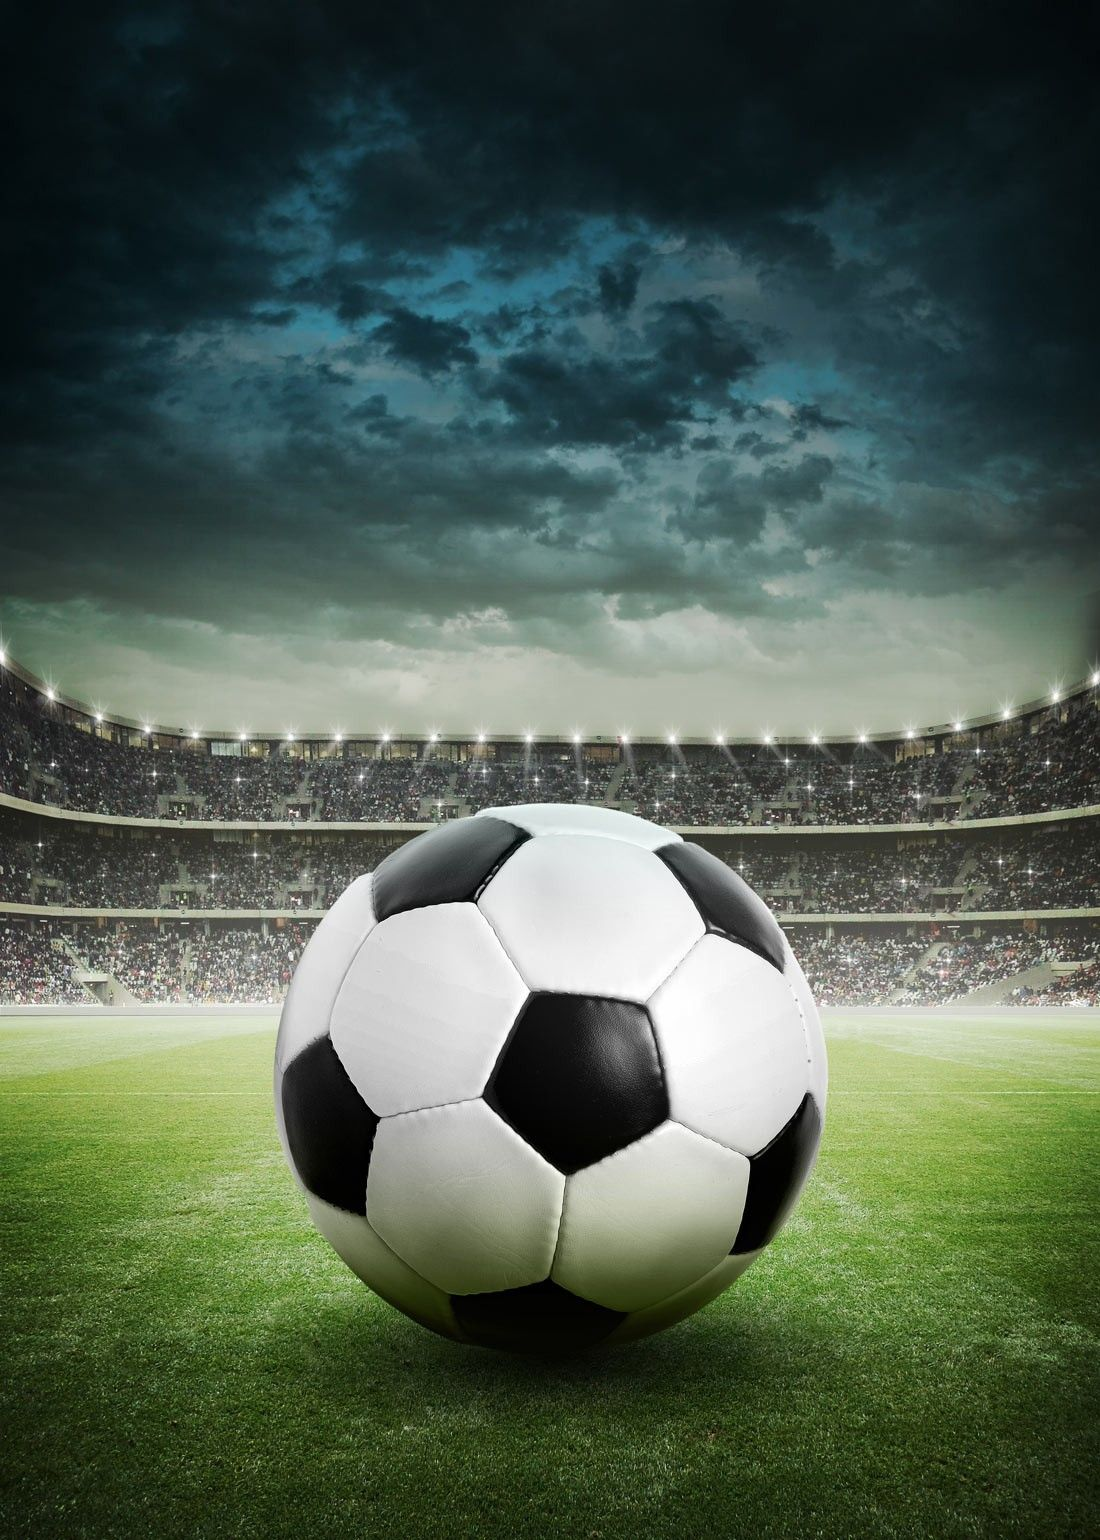 Stormy Soccer Stadium Wall Mural: Sports: Soccer: A Lone Soccer Ball Is The Part 85